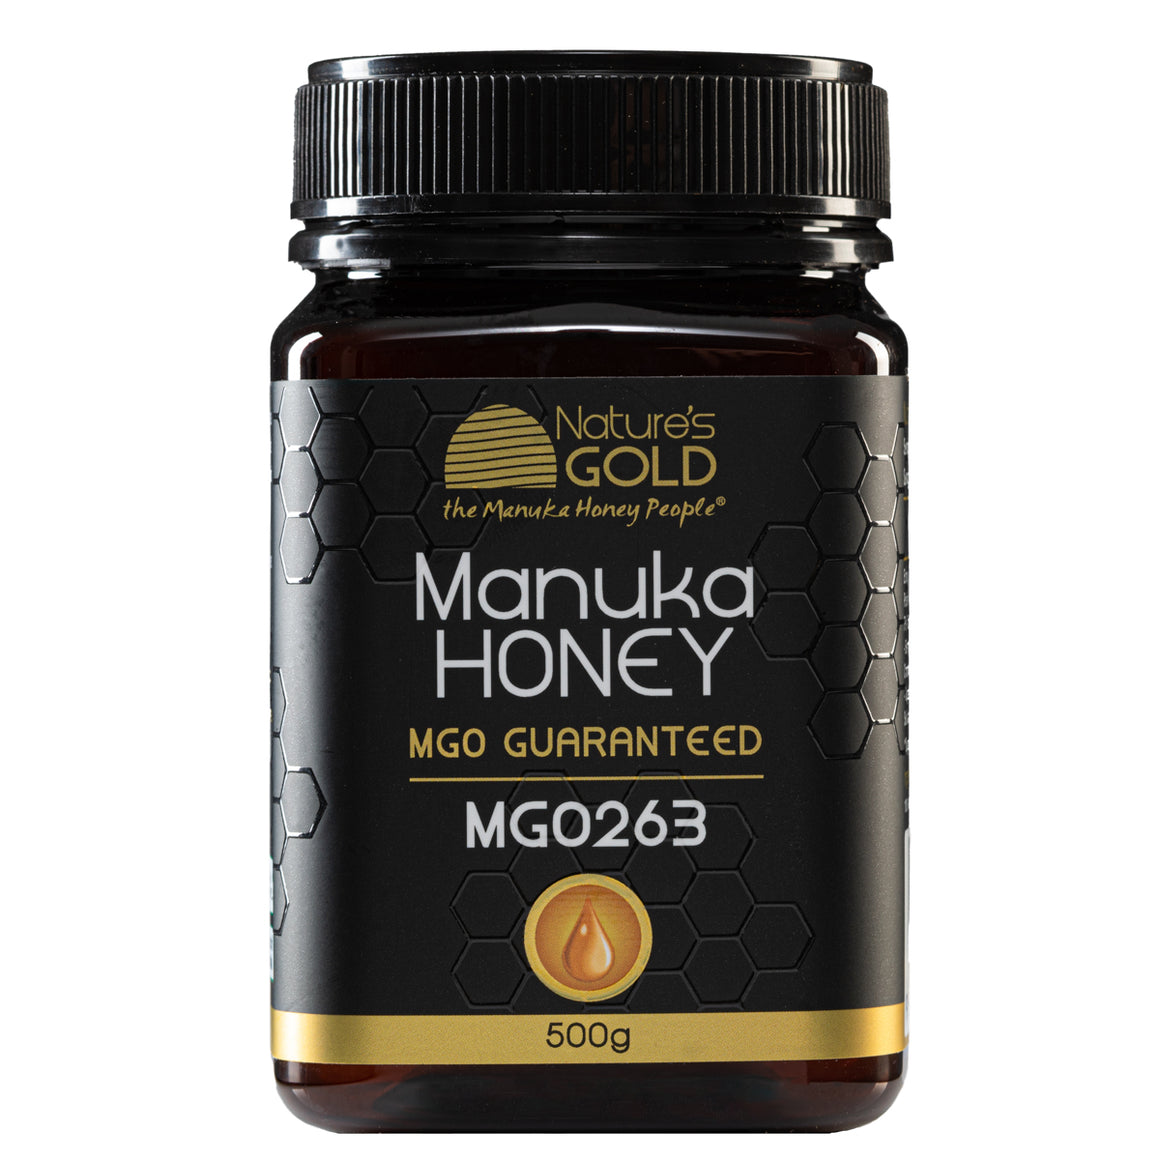 MGO 263 - 100% RAW AUSTRALIAN MANUKA HONEY